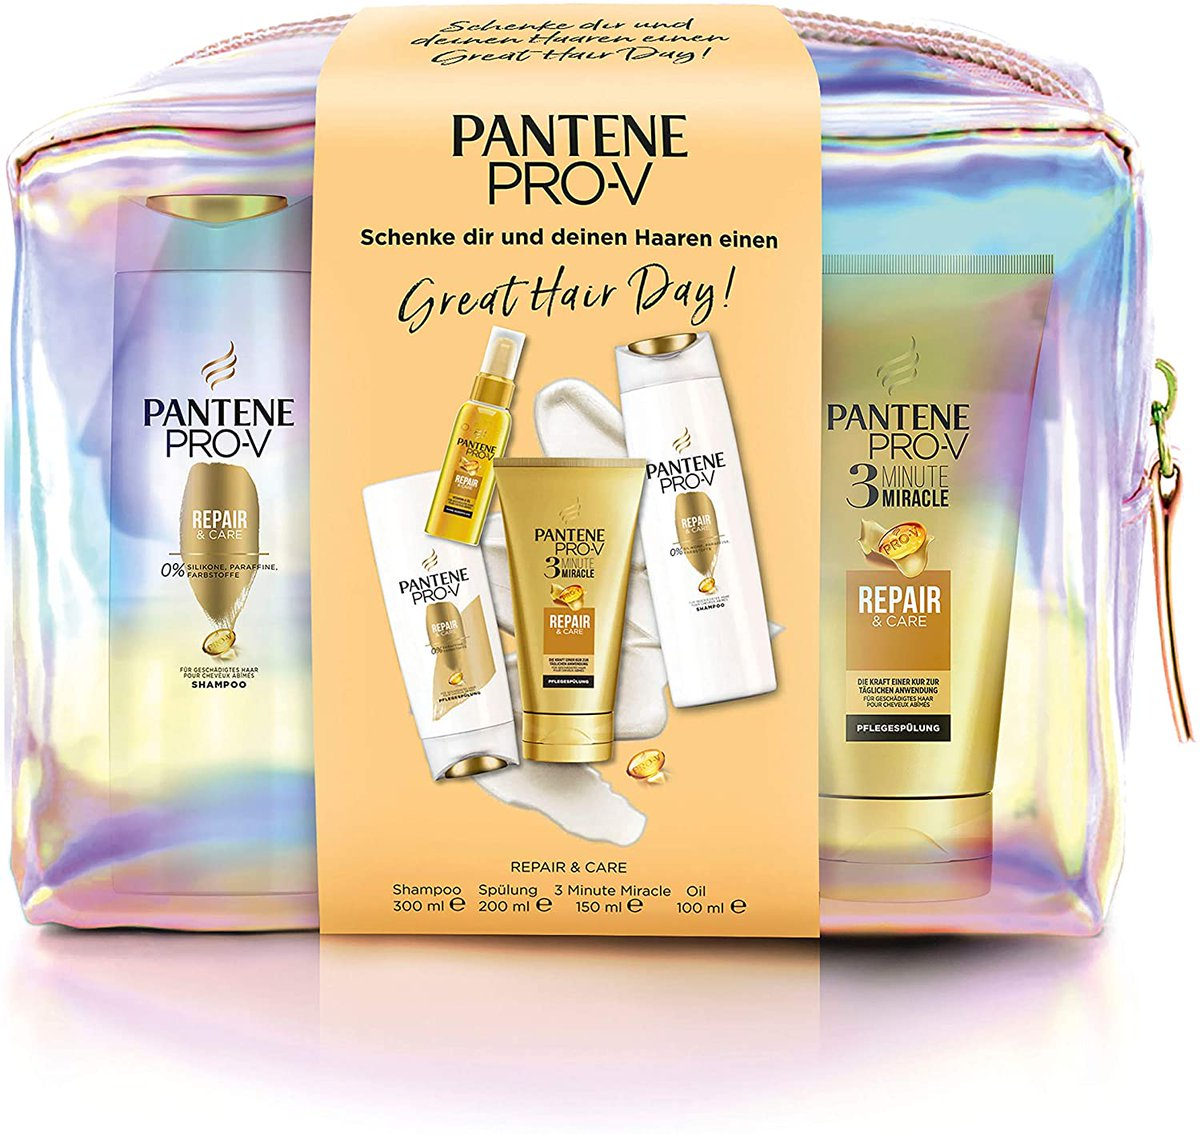 Pantene Pro-V gift set. Lots of products for a really low price. More info:  #ad #Pantene #hair